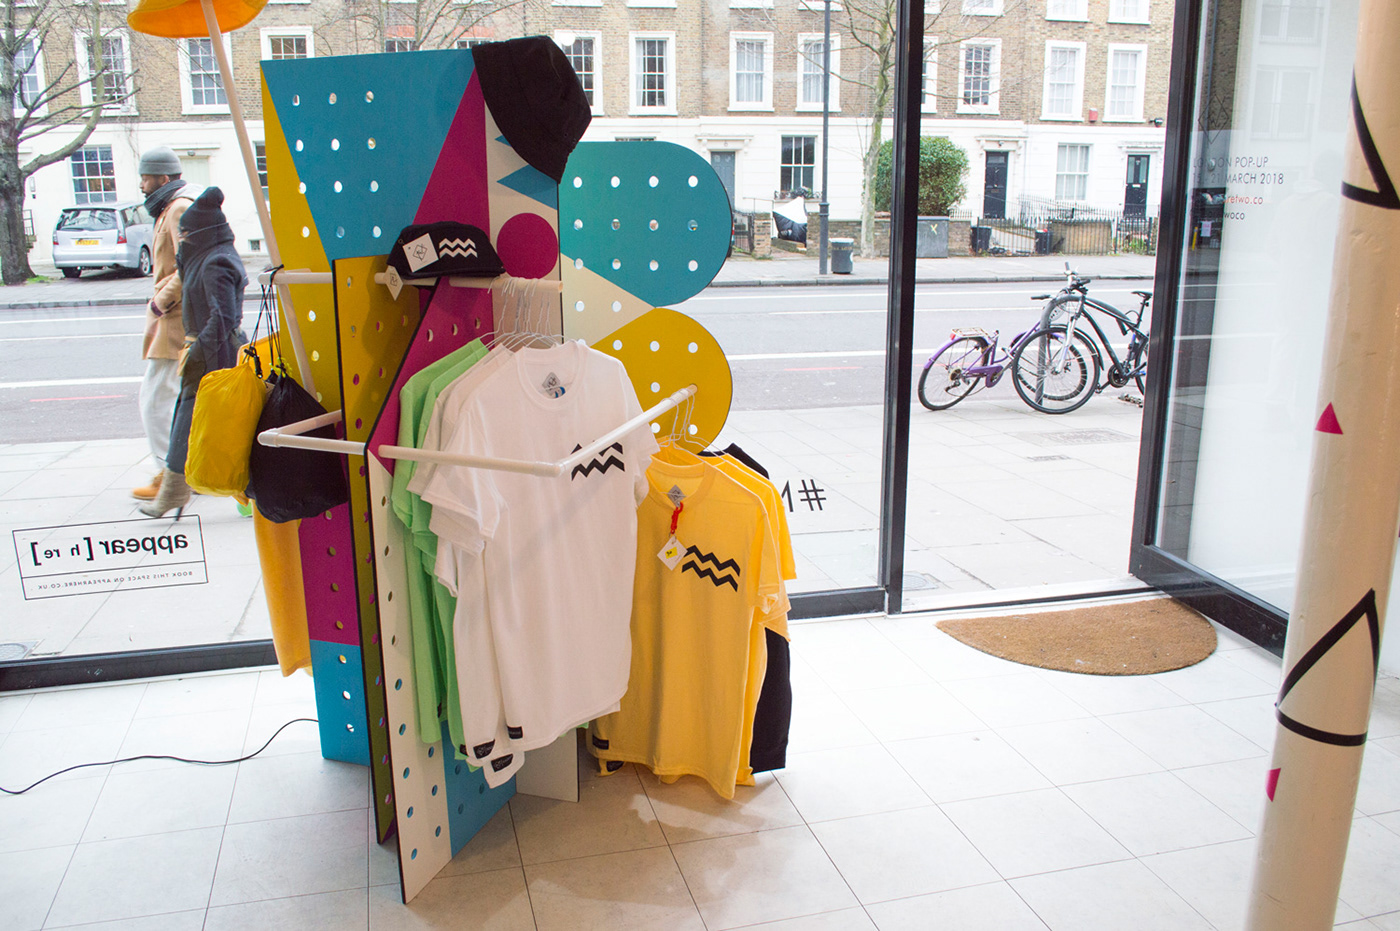 wood clothing rail Visual Merchandising Pop-Up Shop Display colour graphic